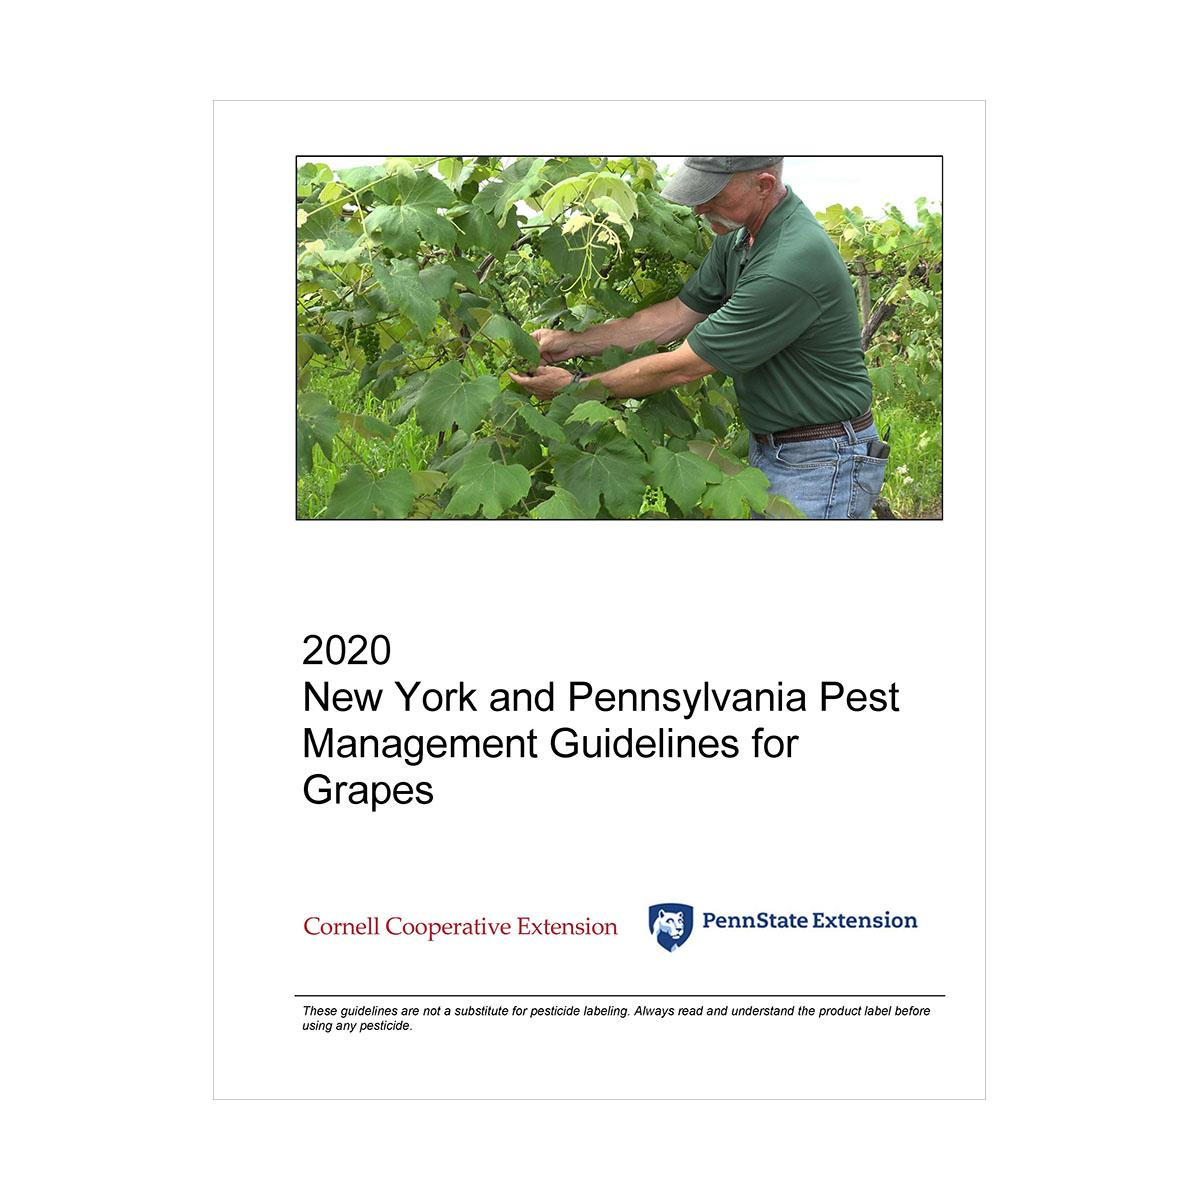 Pmep Guide For Ny And Pa Gmgmt